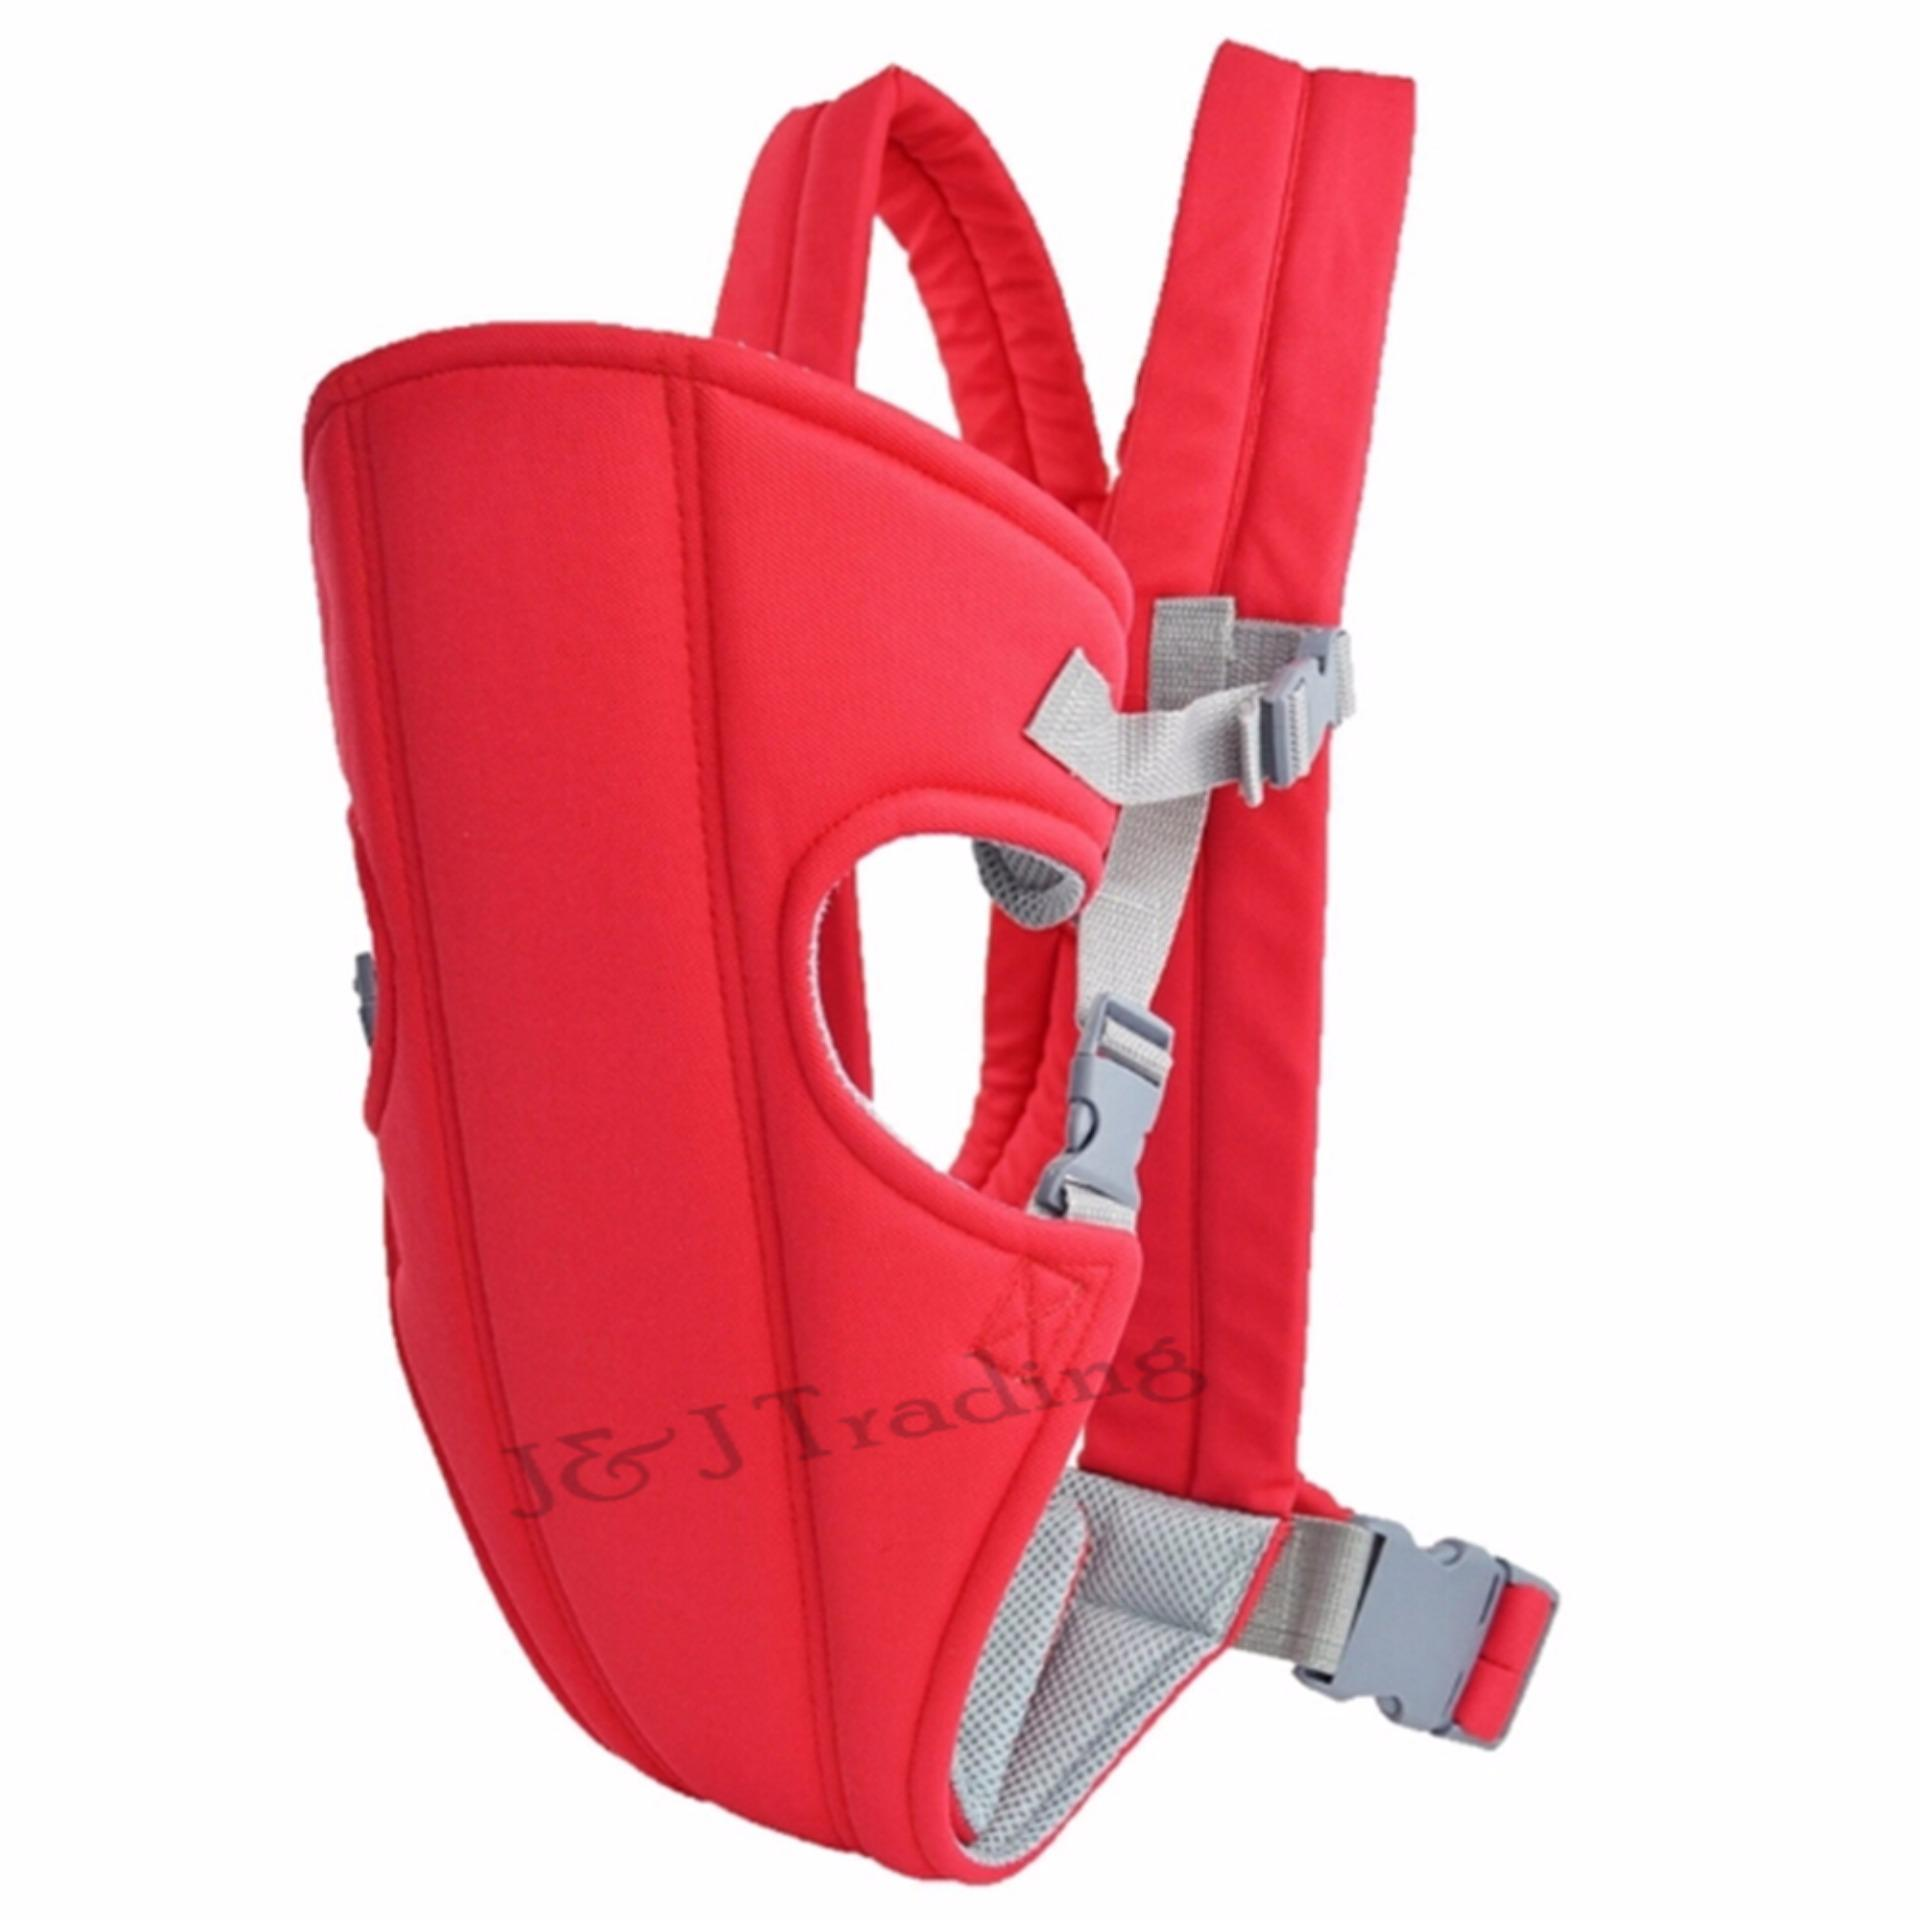 J&J Adjustable Sling Wrap Rider Infant Baby Carrier (Red) withElectron Go Out Mosquito Mini Night Lamp (Pink)